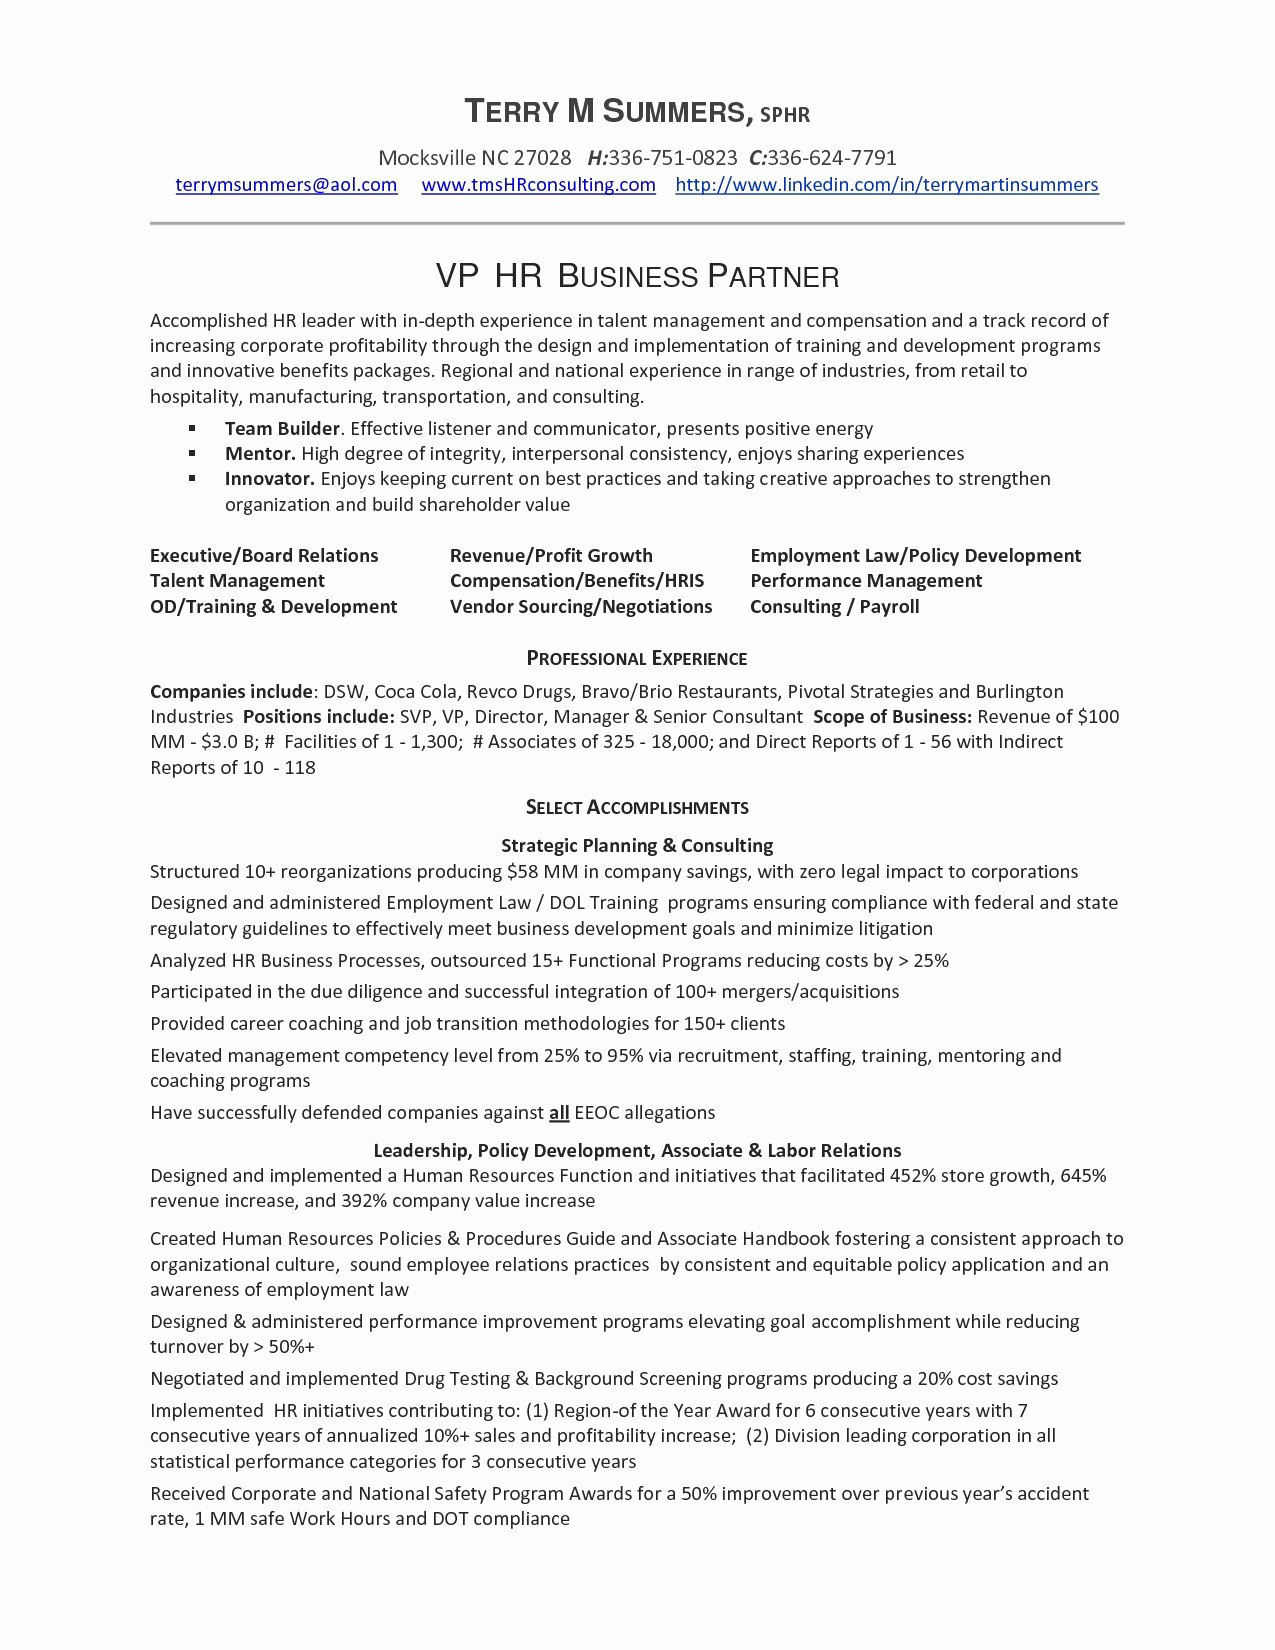 Agile Business Analyst Resume - Functional Business Analyst Resume Free Downloads Business Analyst